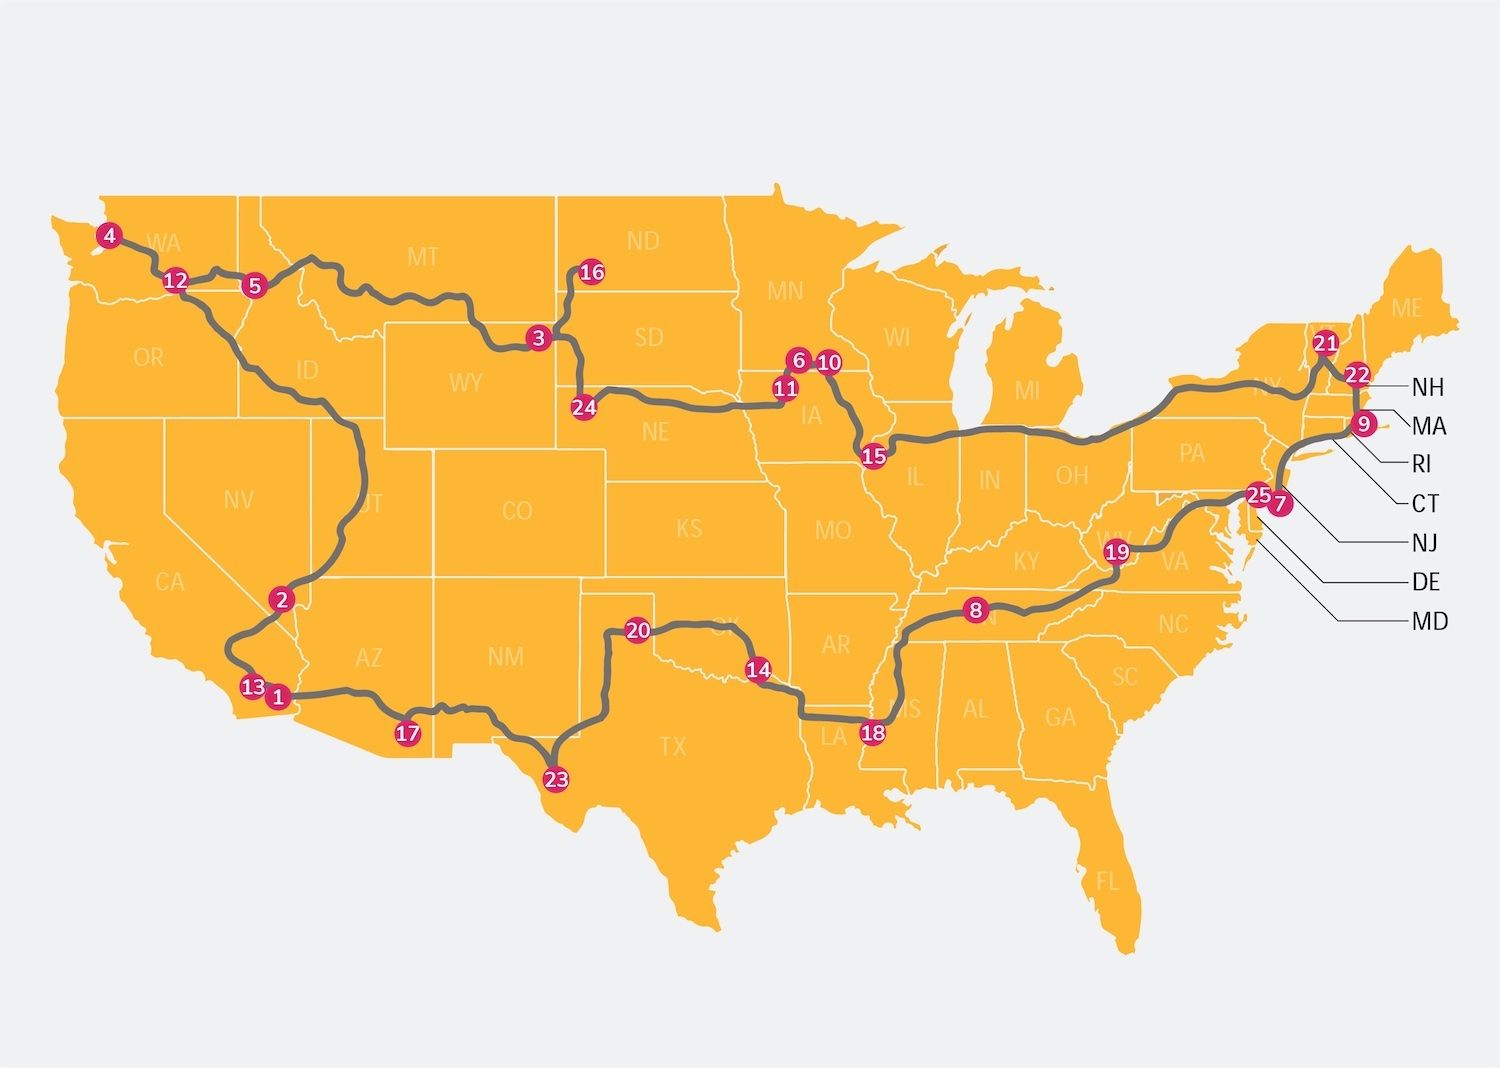 map of the best road trip itinerary to see the most popular roadside attractions in the US